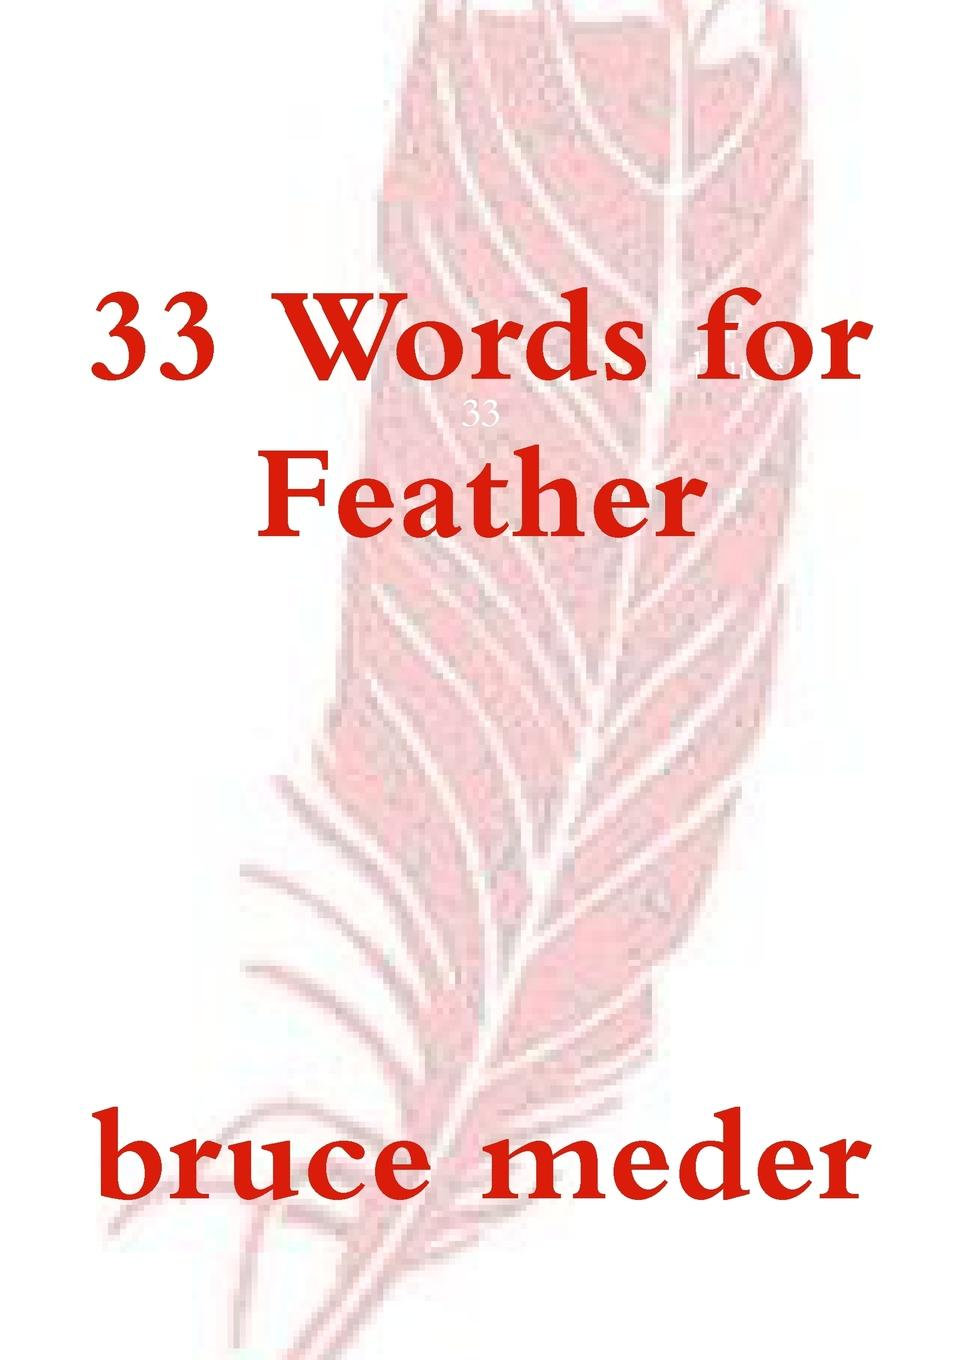 bruce meder 33 Words for Feather wild feathers wild feathers lonely is a lifetime